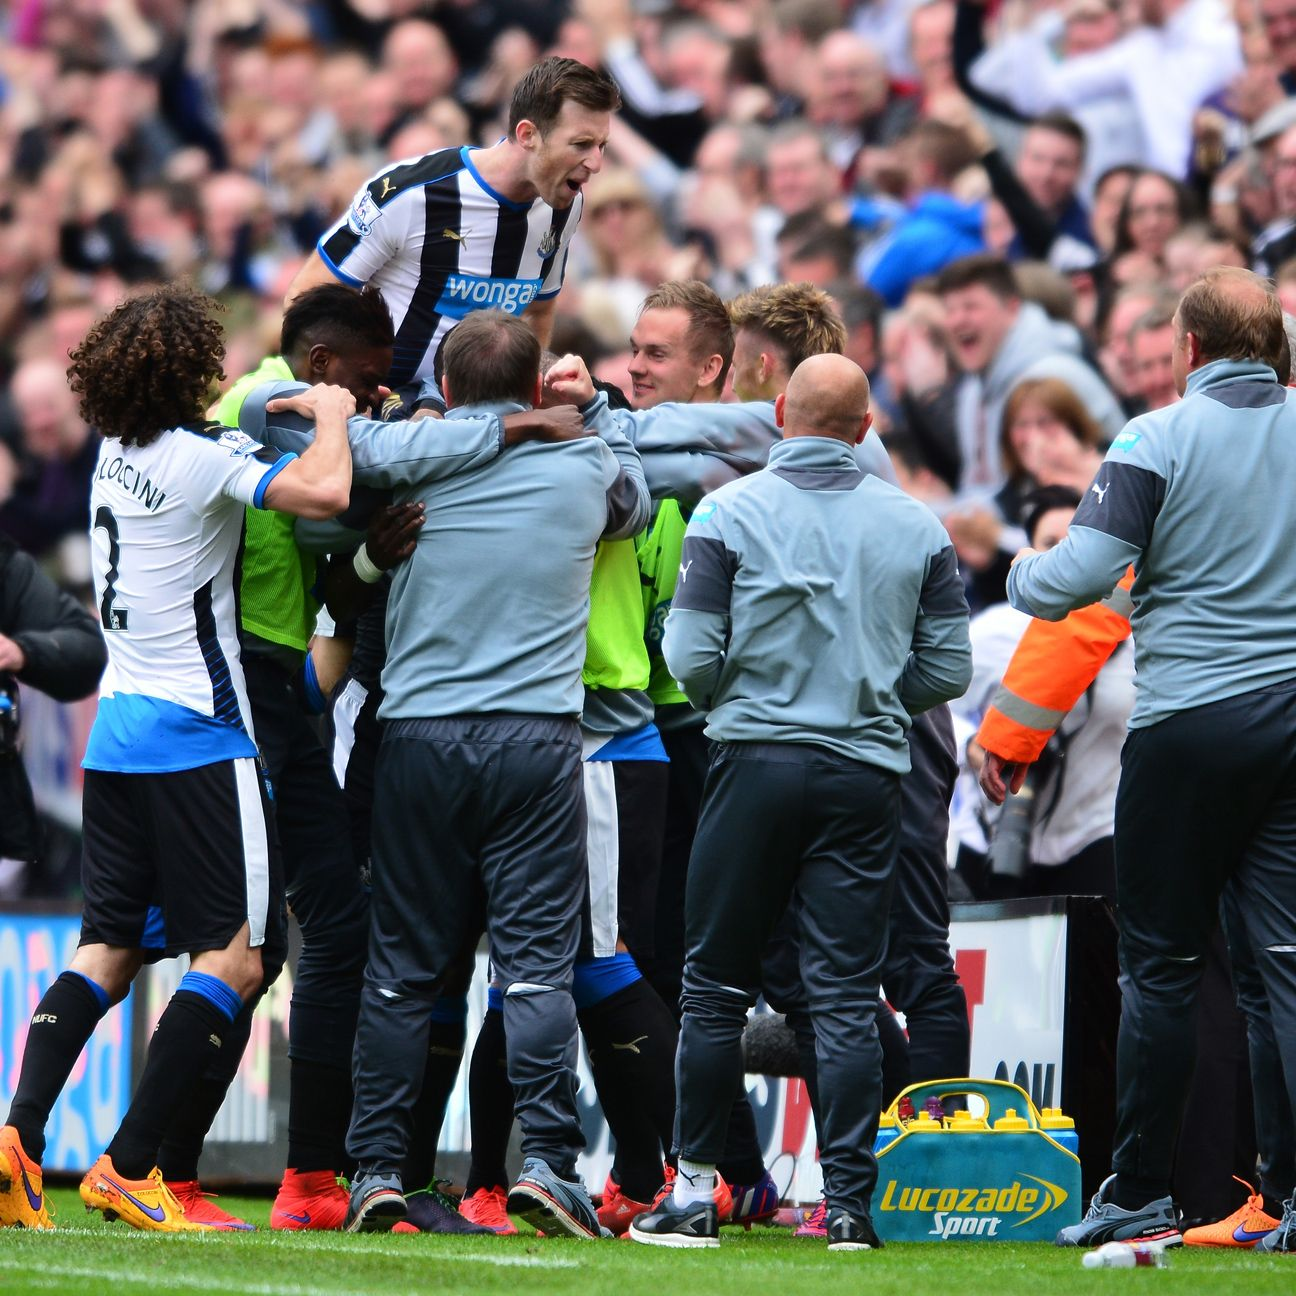 Newcastle achieved victory for the first time since February in Sunday's triumph over West Ham.